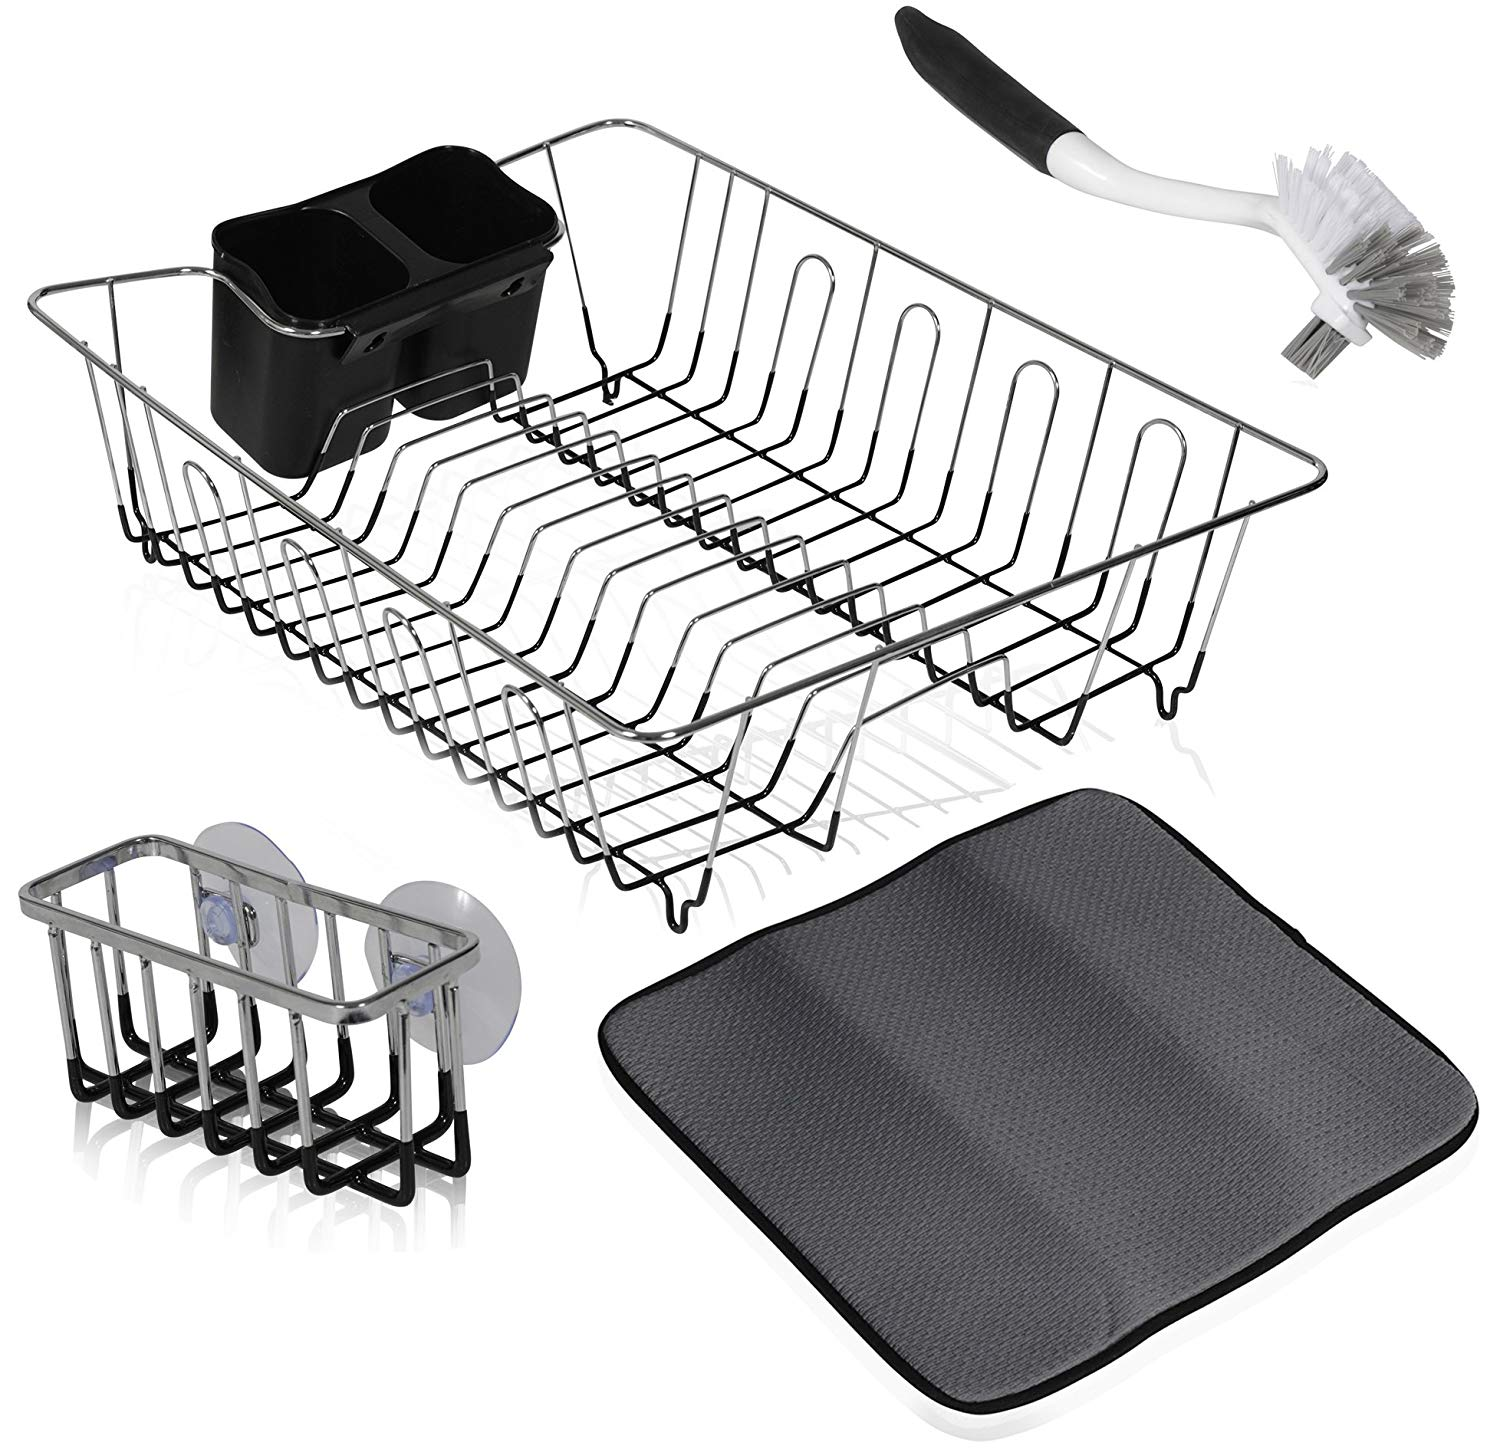 Complete Kitchen Drain Organizer Set With 2 Sided Dish Cleaning Scrub Brush + Dish Rack With Cutlery Holder + 2 Suction Cloth/Sponge Holder + Dish Drying Mat